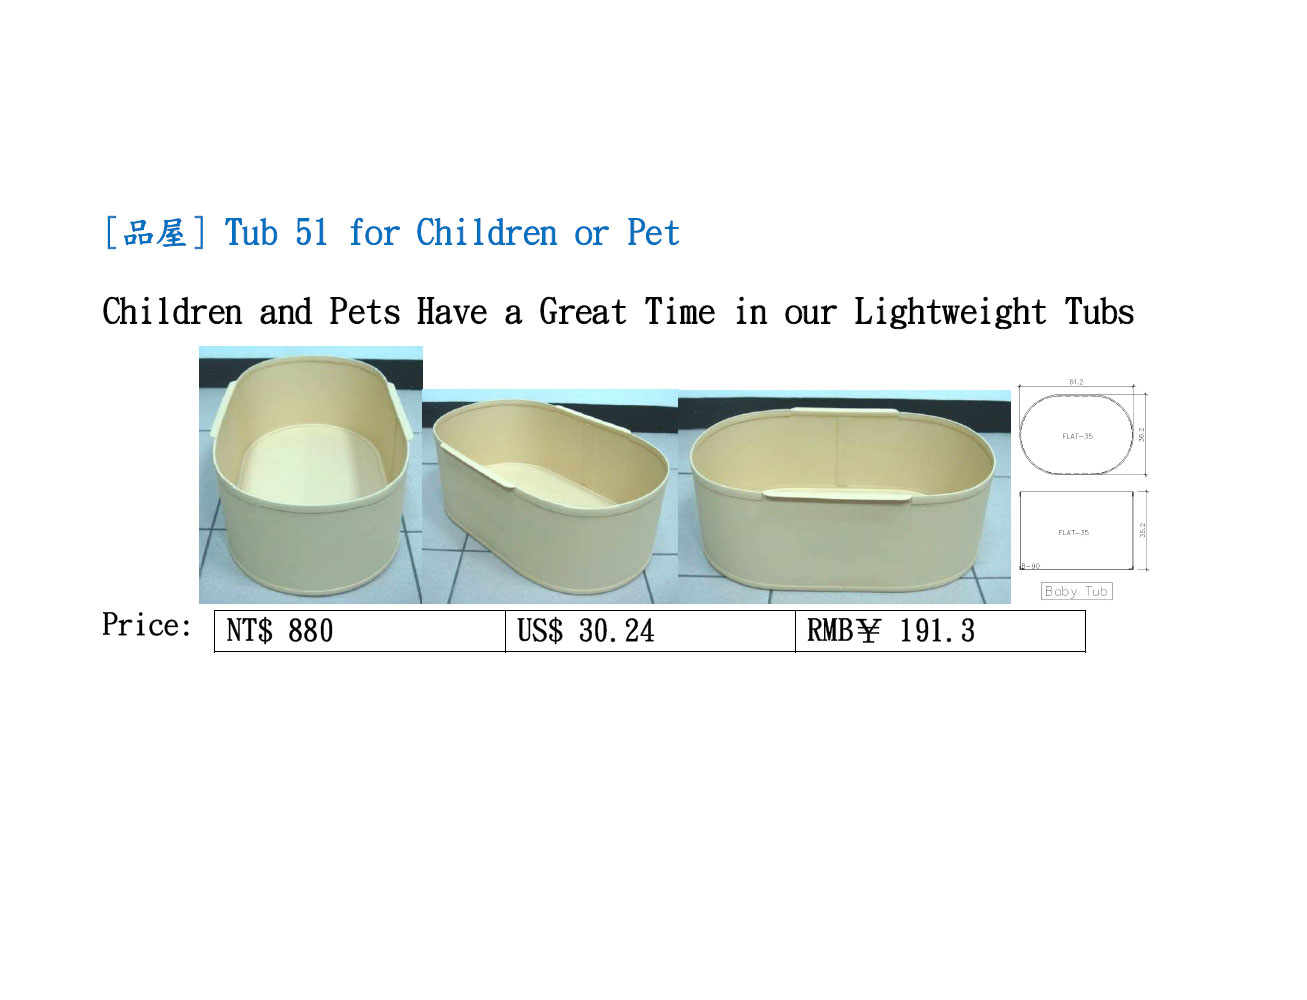 Tub 51 for Children or Pet